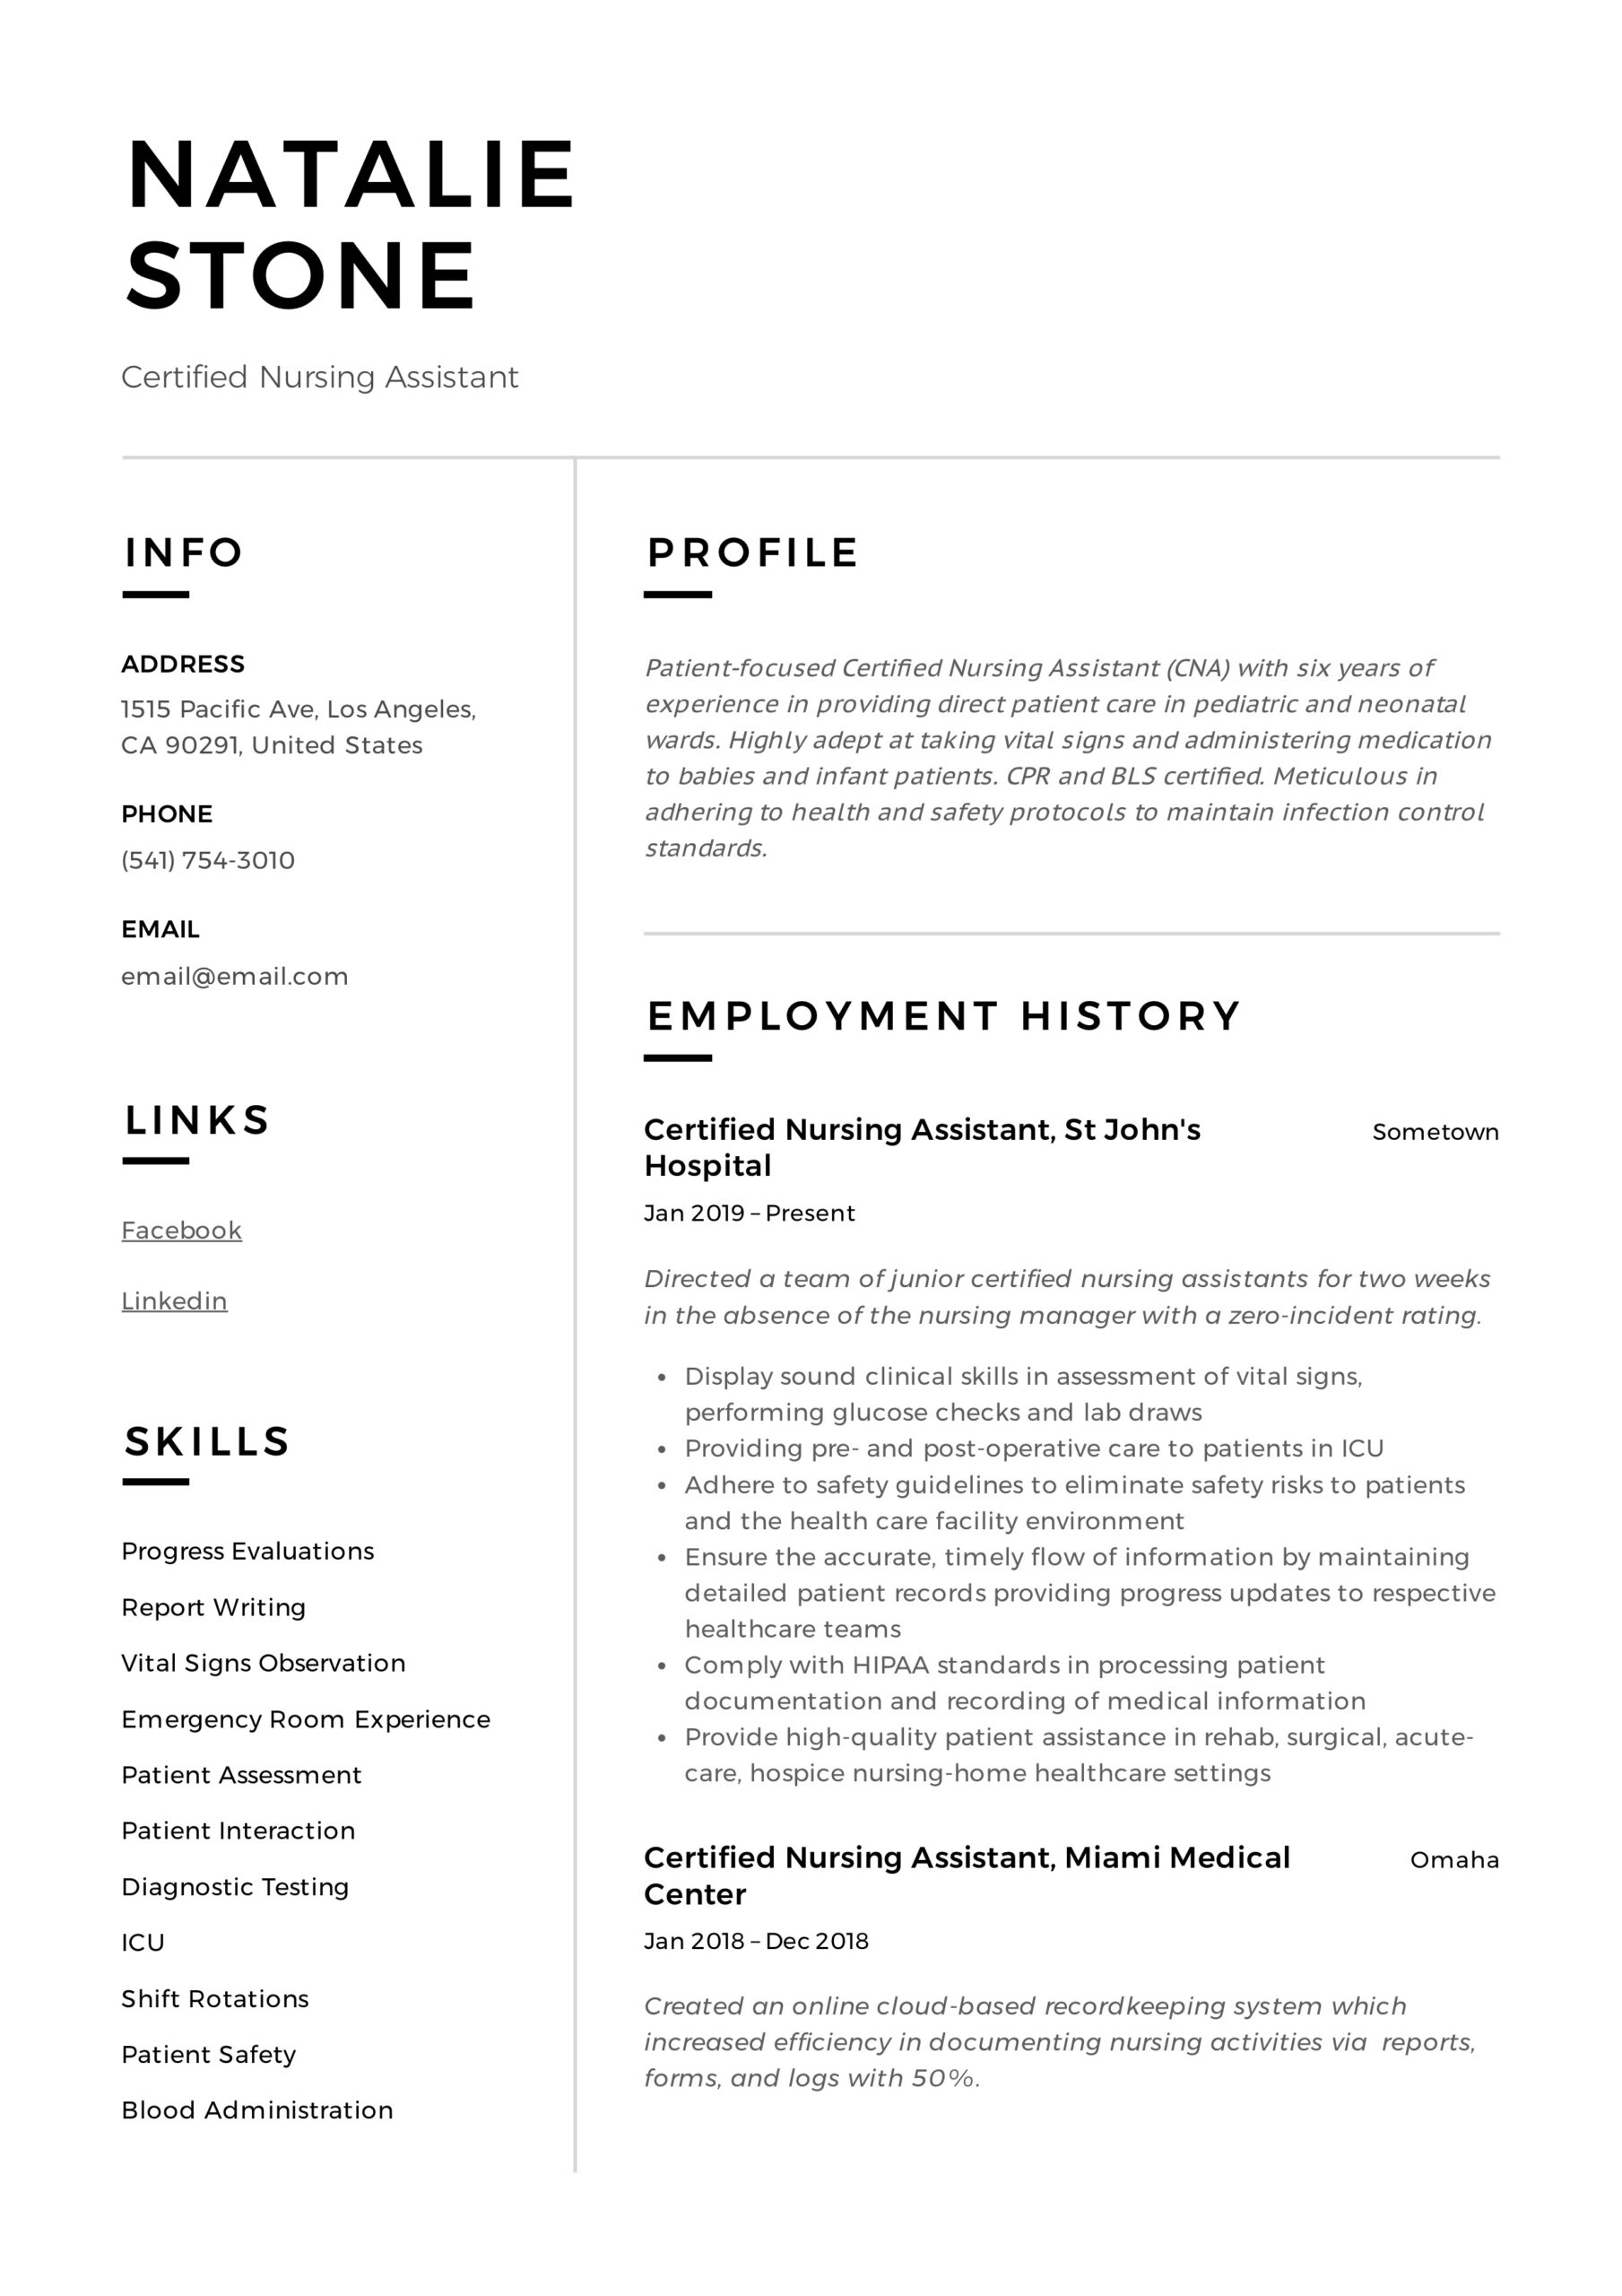 certified nursing assistant resume writing guide templates cna examples fresh graduate Resume Cna Resume Examples 2018